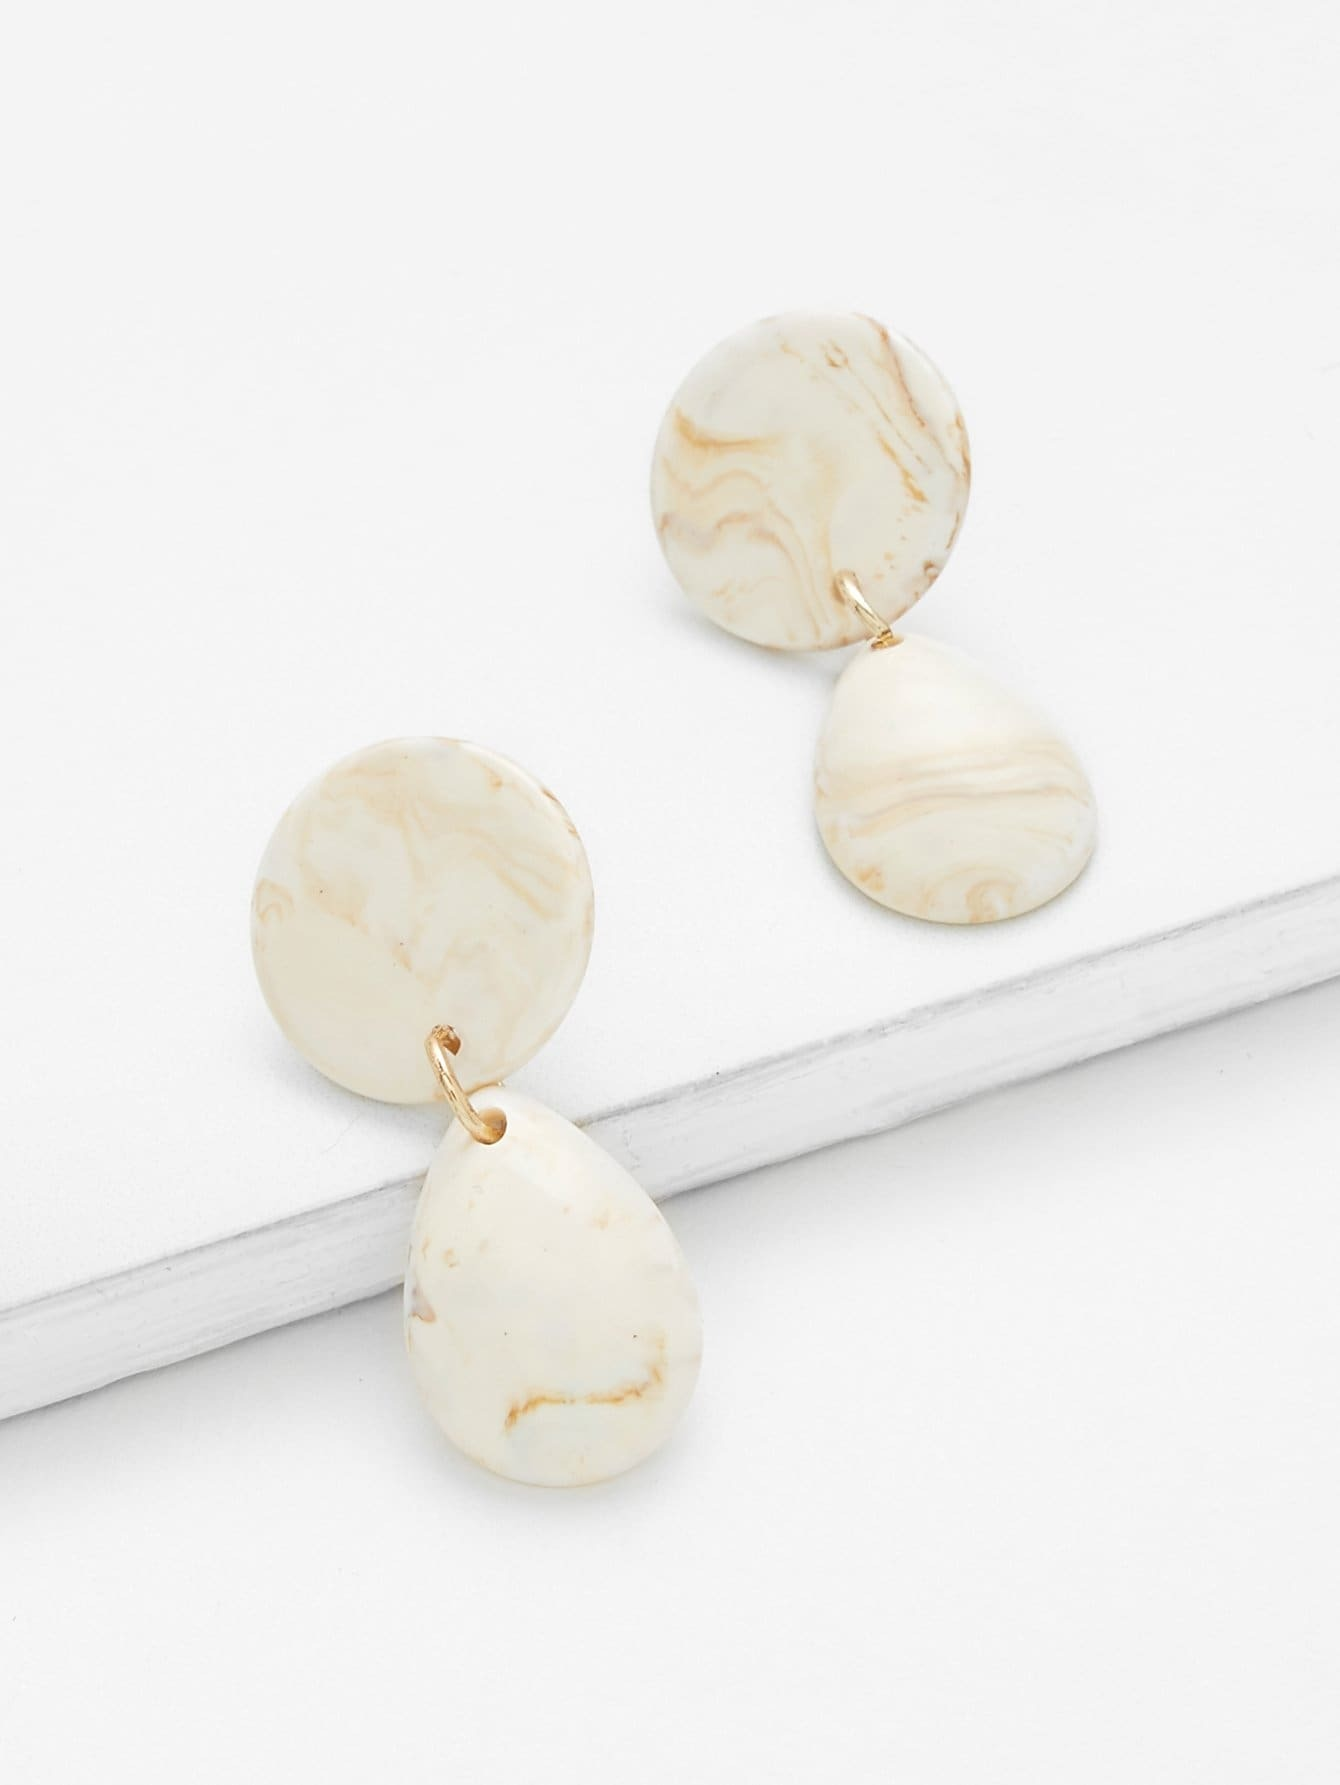 Marble Pattern Waterdrop Earrings 2 0 lcd digital personal body weight scale 150kg 100g 2 x aaa